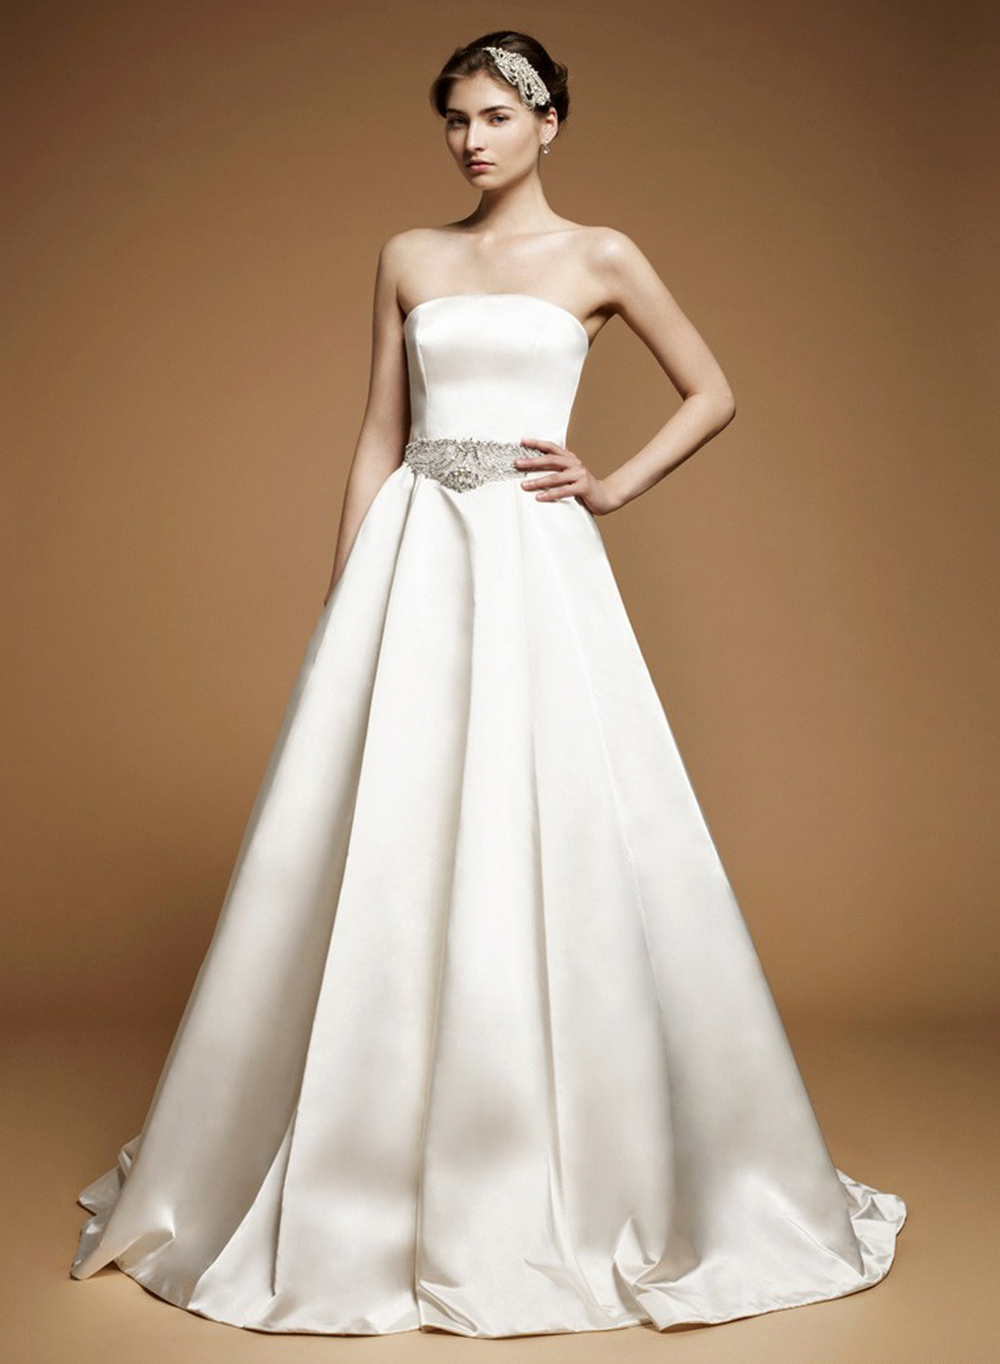 TRADITIONAL BALLGOWN